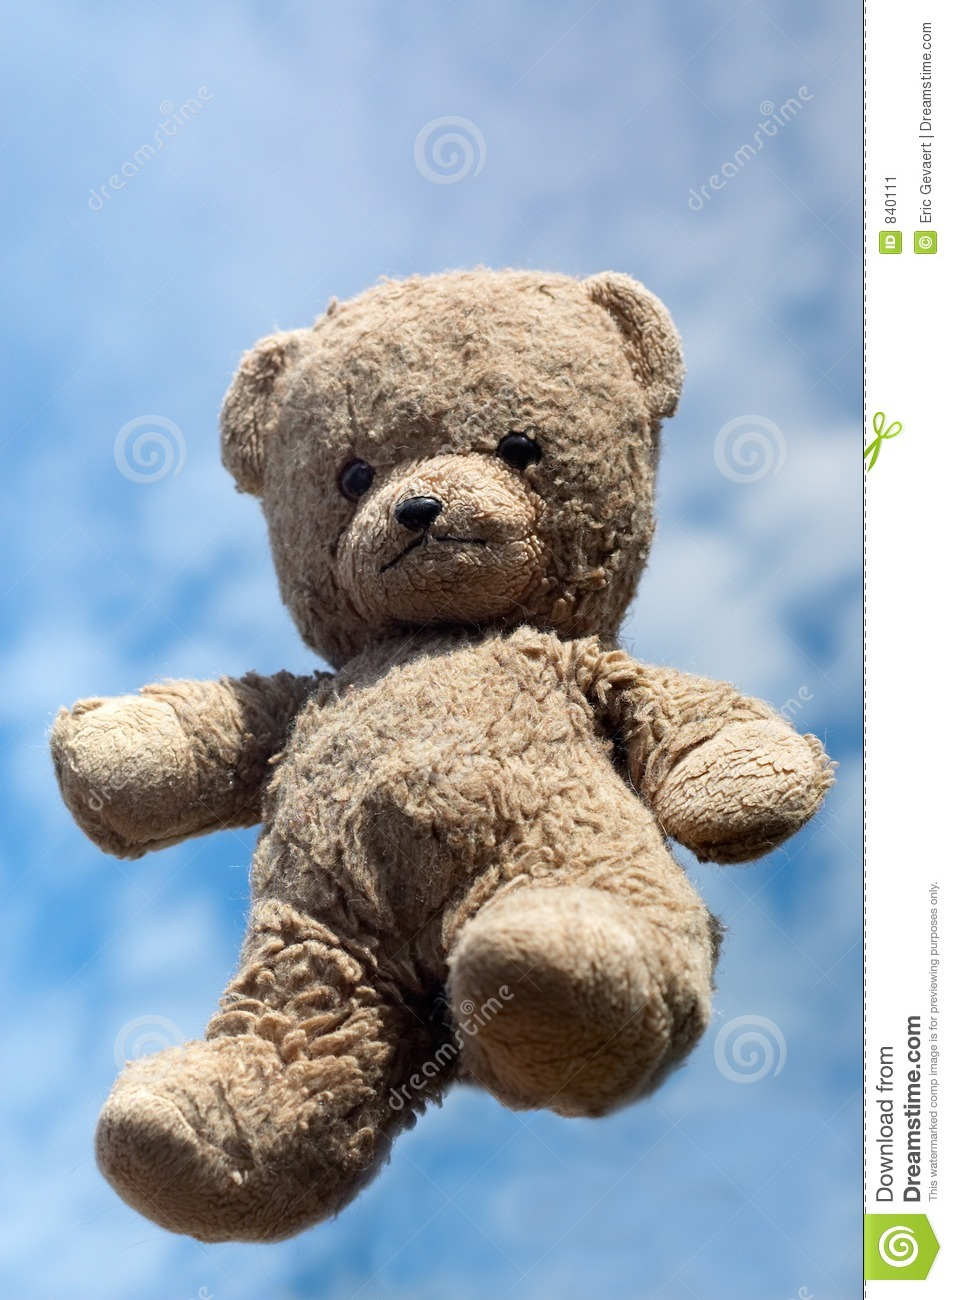 Teddy in the air